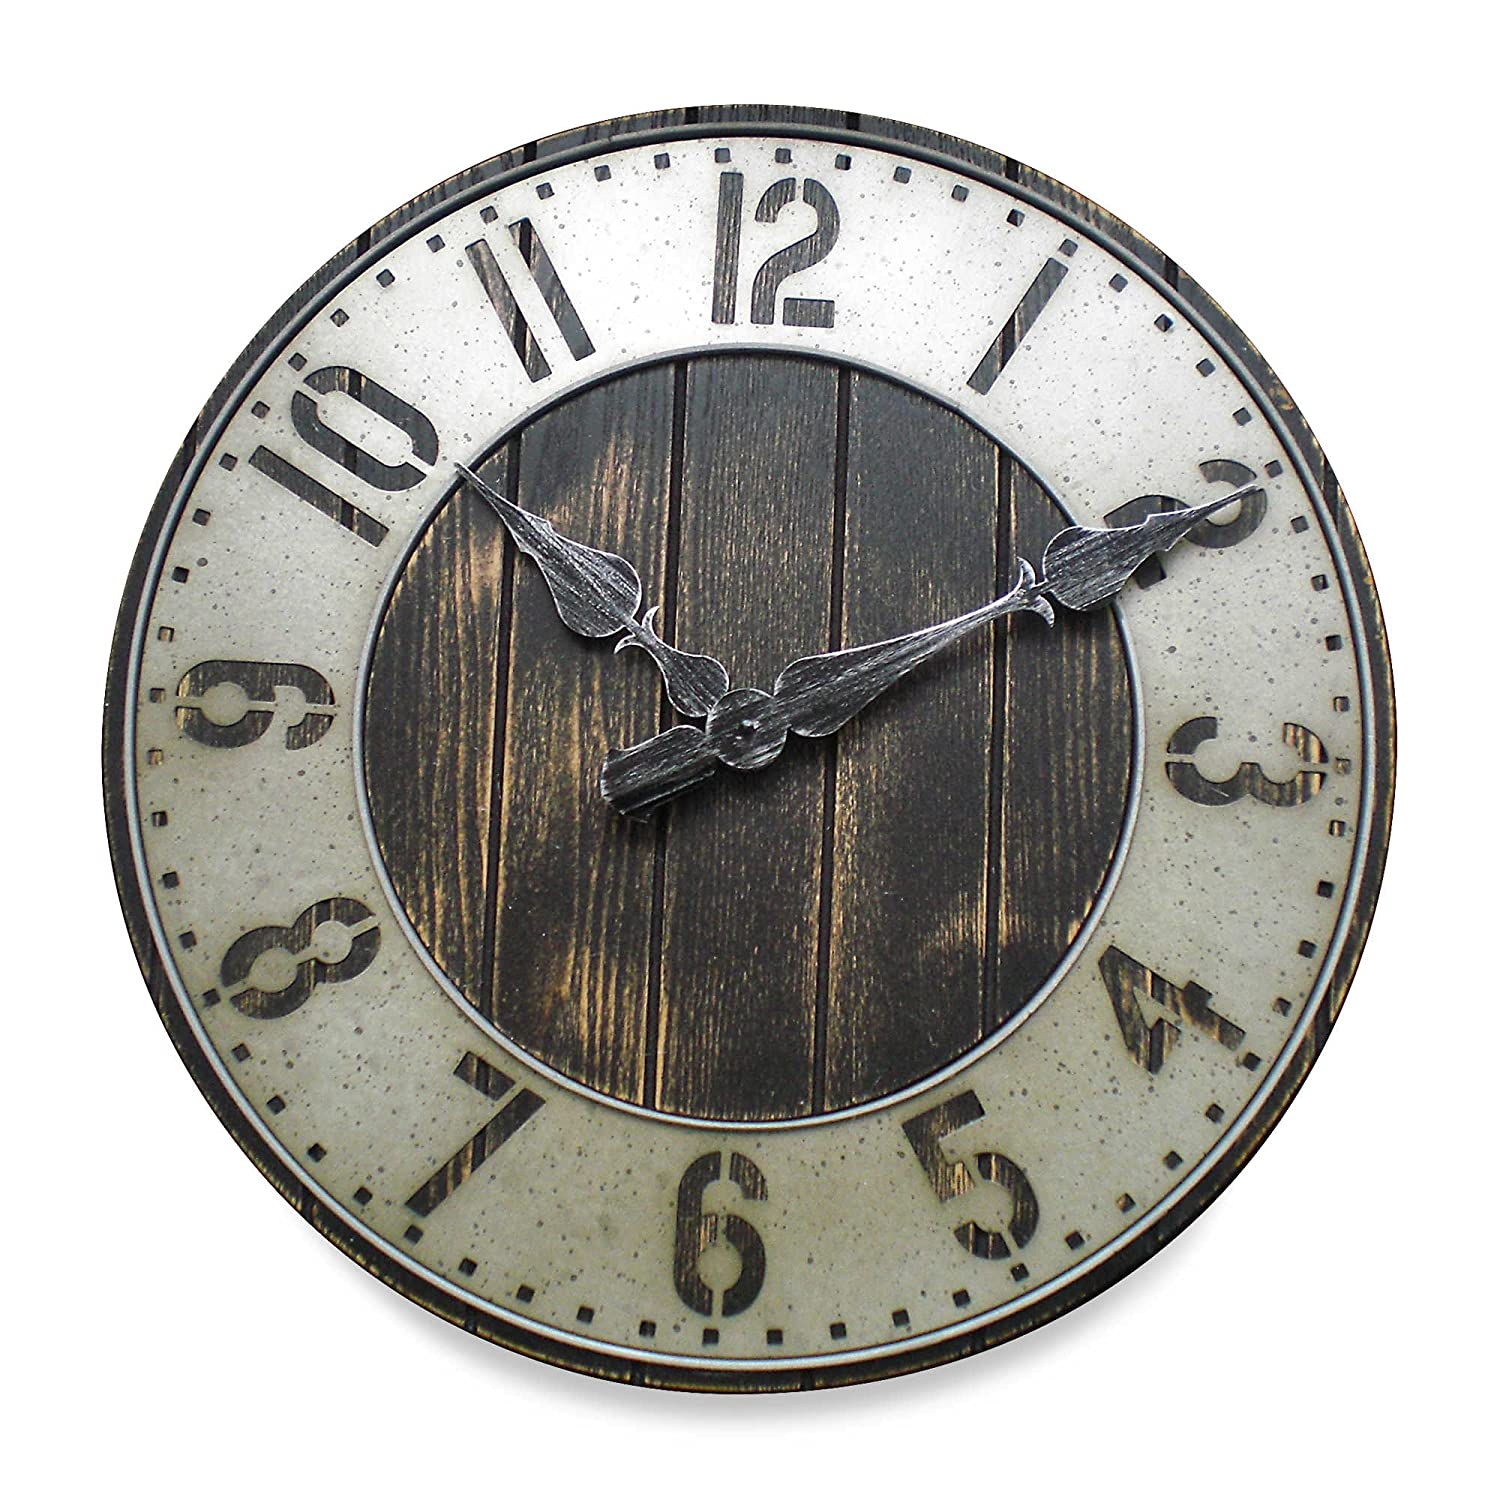 Amazon 20 in rustic punched metal wall clock home kitchen amipublicfo Image collections